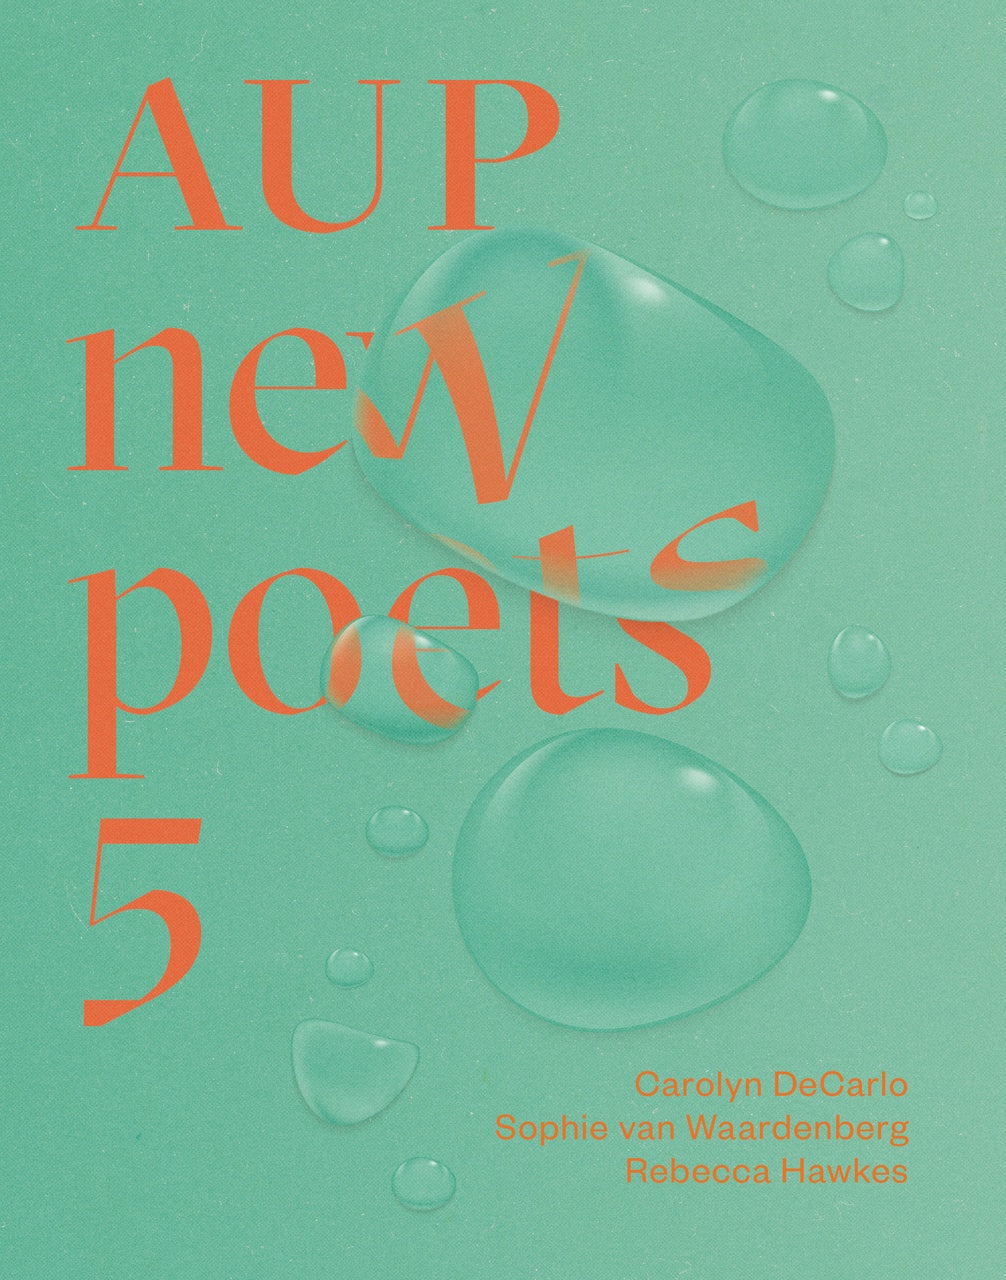 AUP New Poets 5 - Strange Goods